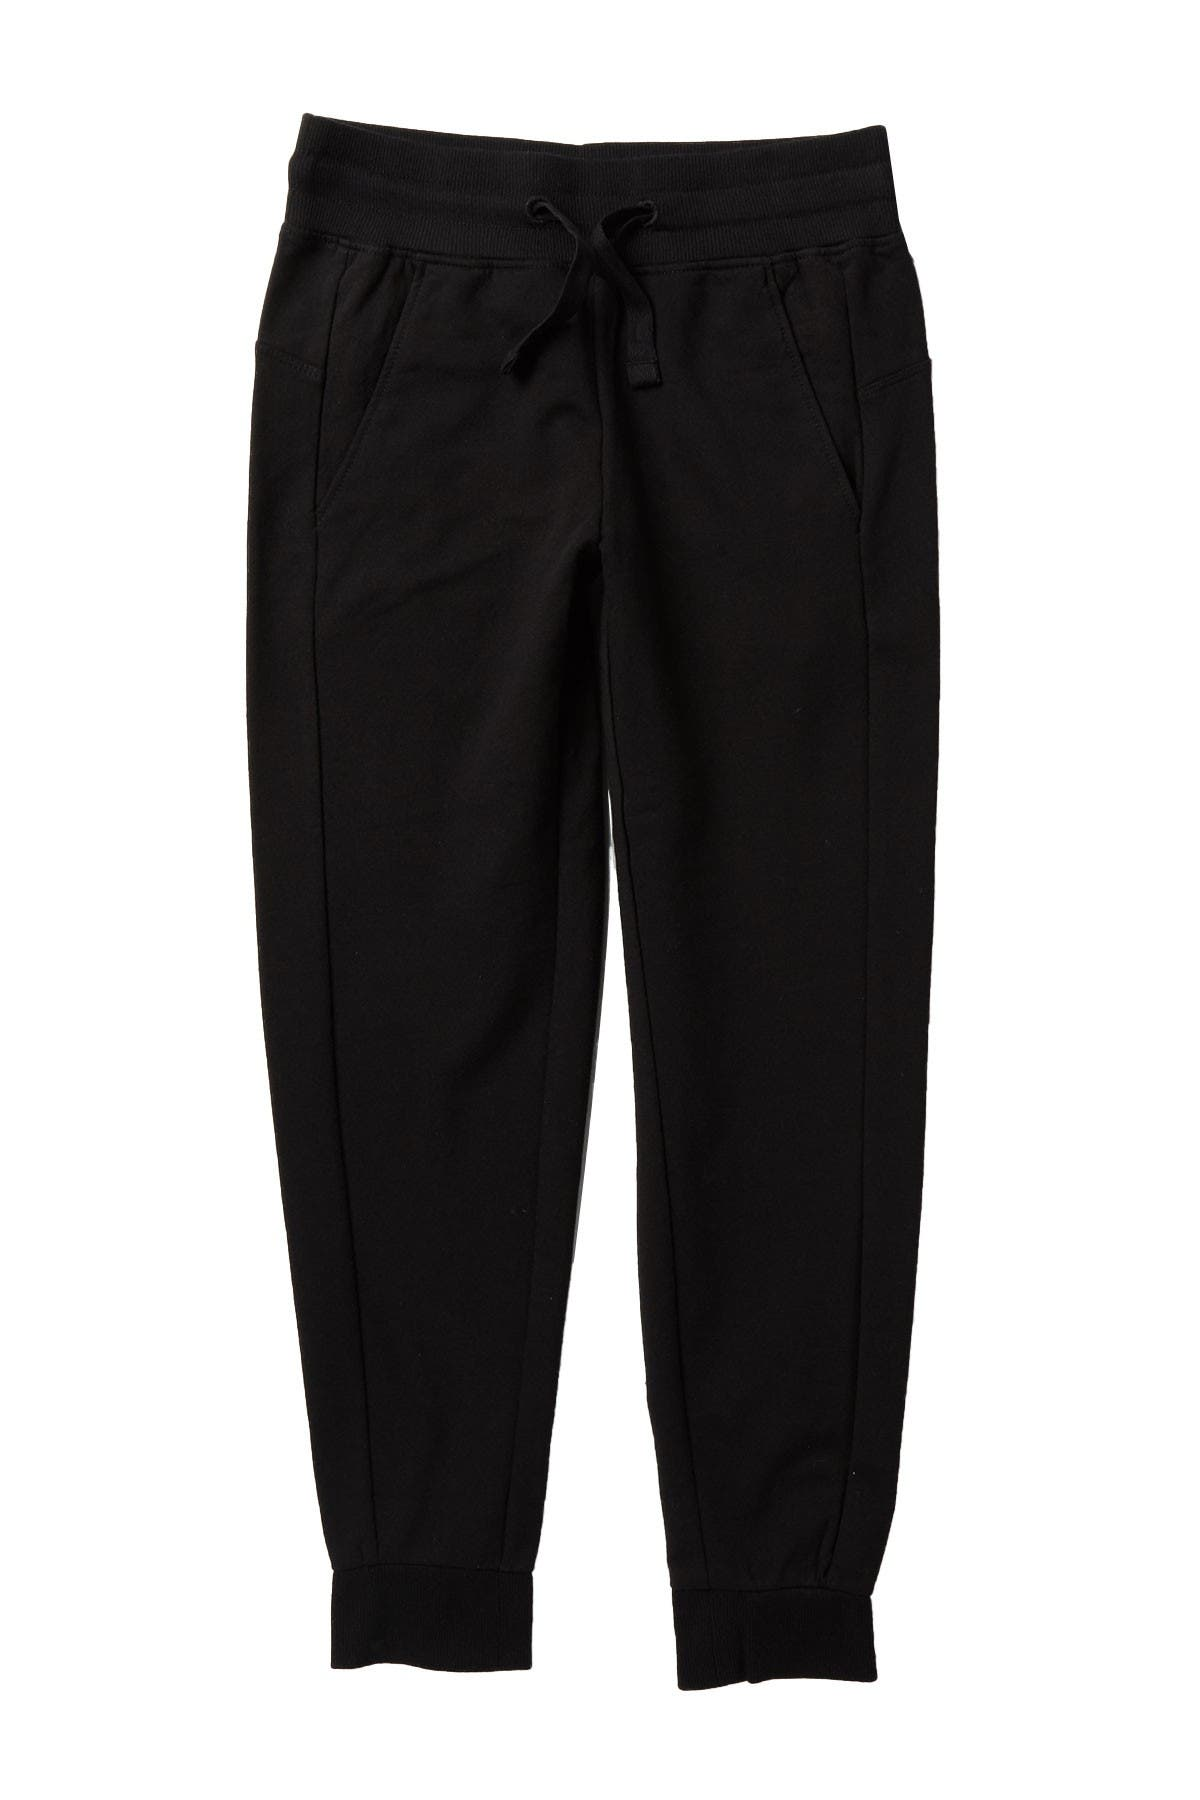 Z by Zella Girl Replay Slim Jogger Pants (Little Girls & Big Girls) at Nordstrom Rack